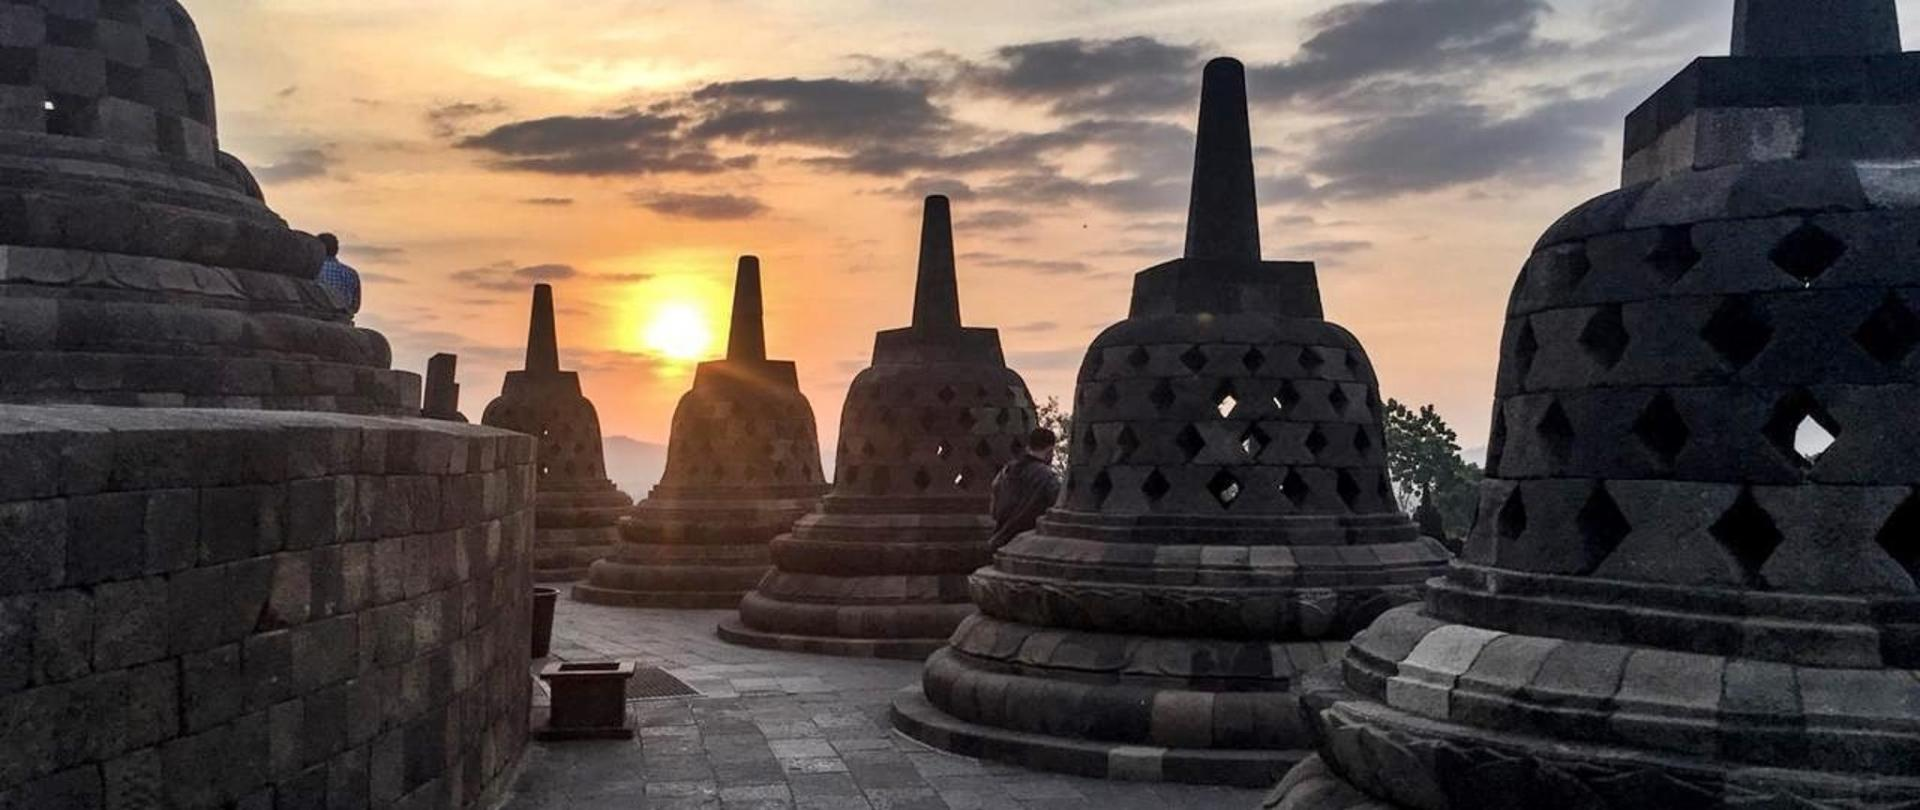 Borobudur Sunrise 2018.jpeg